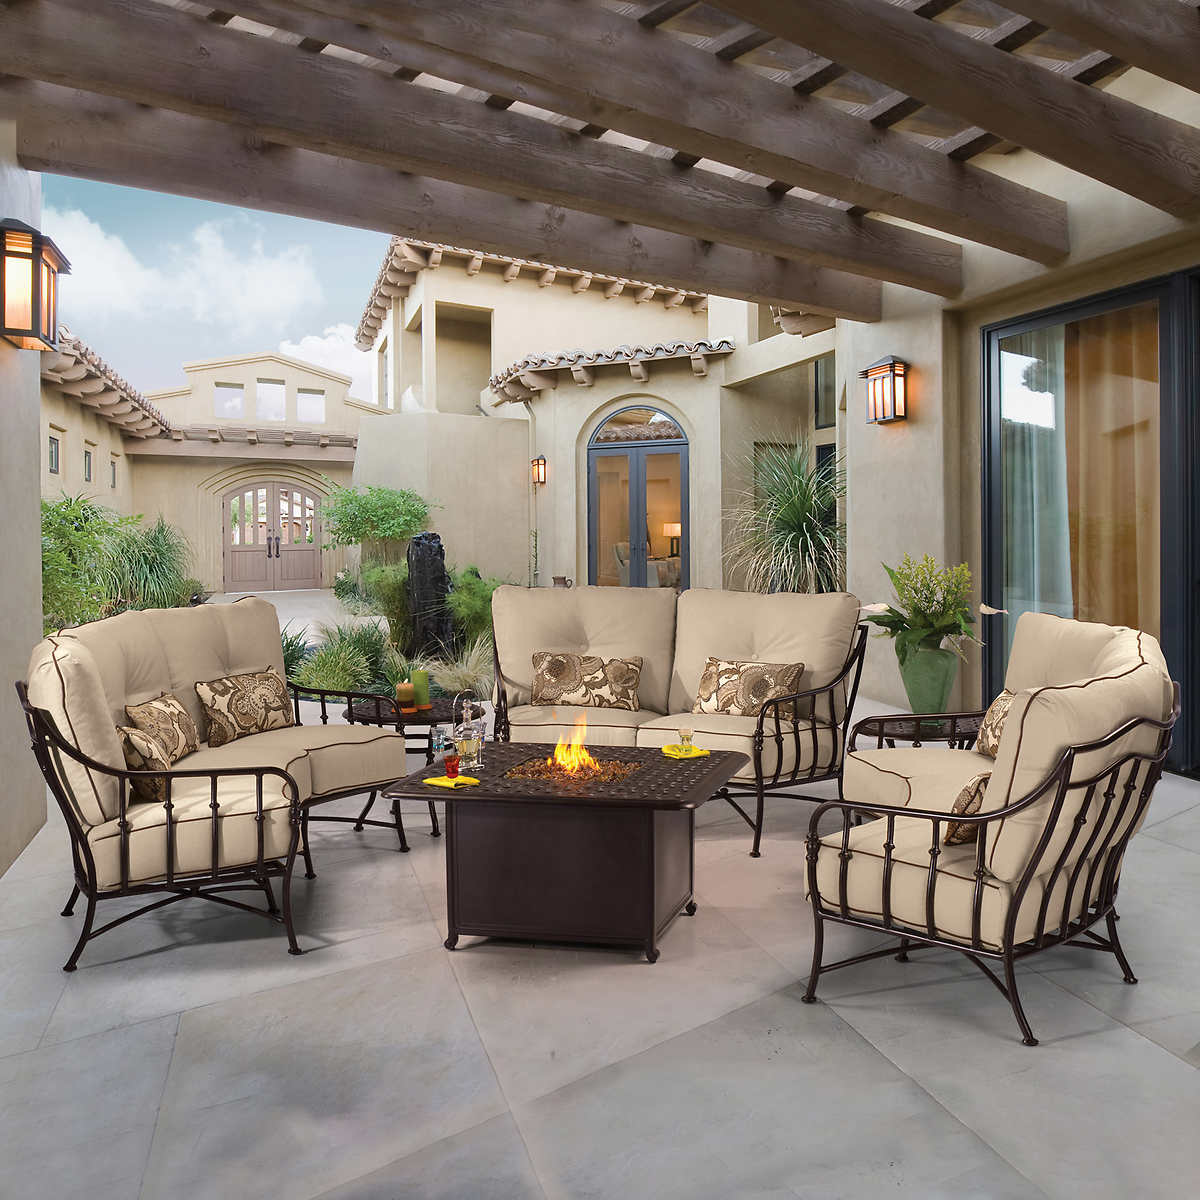 Cortez 6-piece Seating Set with Fire - Fire Pits & Chat Sets